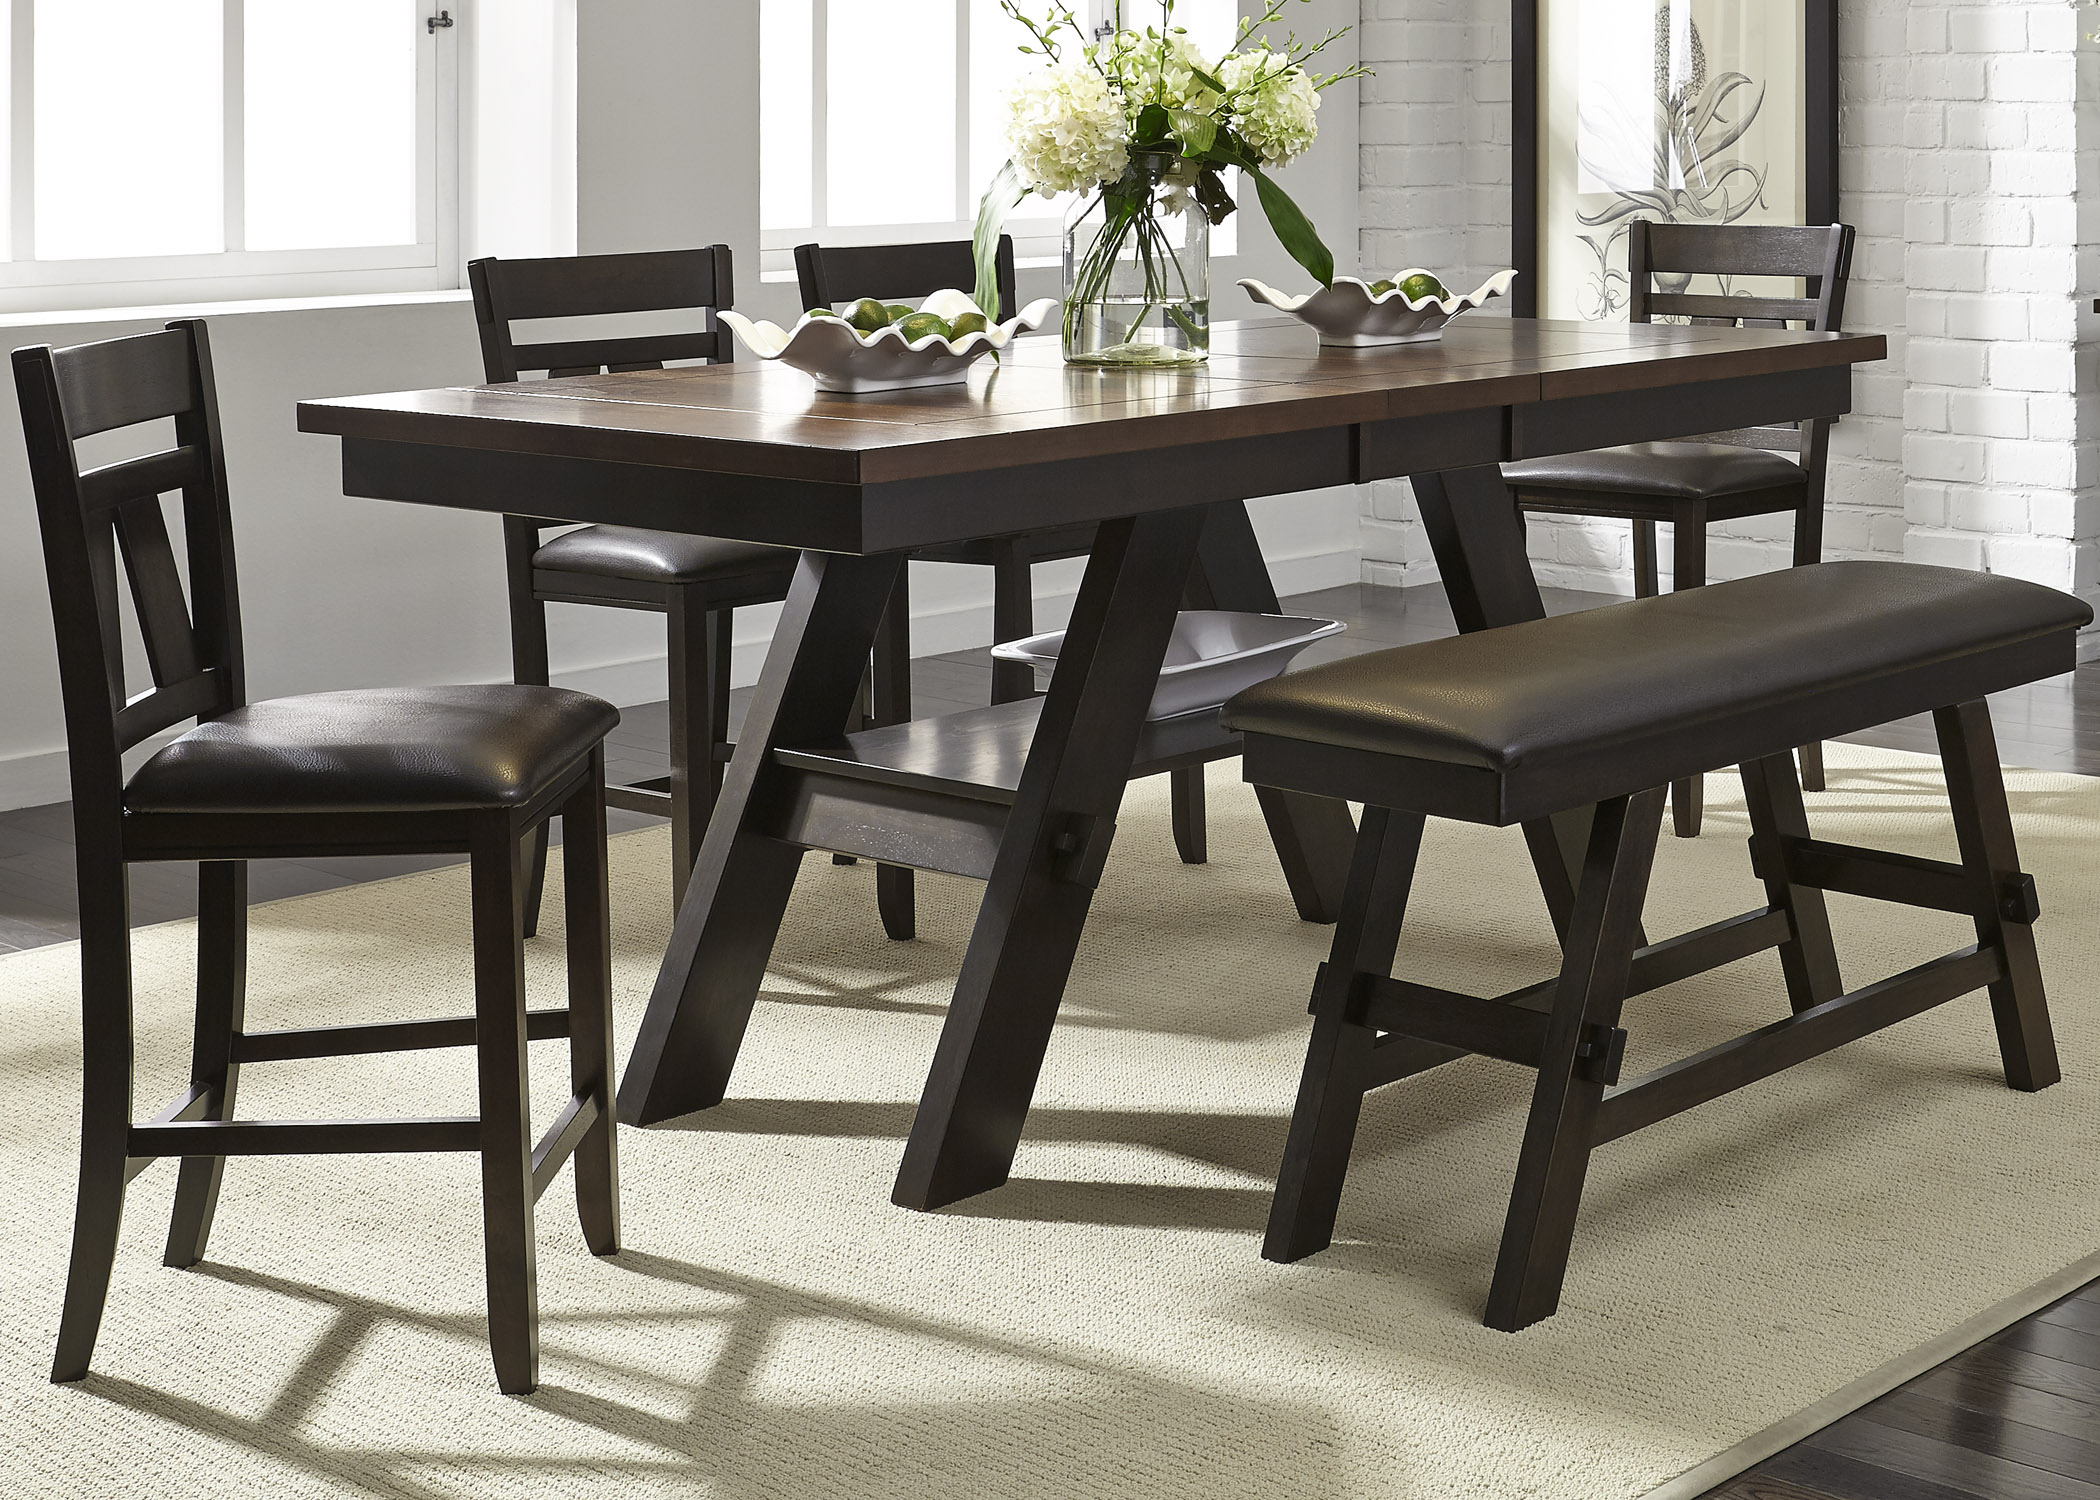 Lawson 6 Piece Gathering Table Set  by Libby at Walker's Furniture